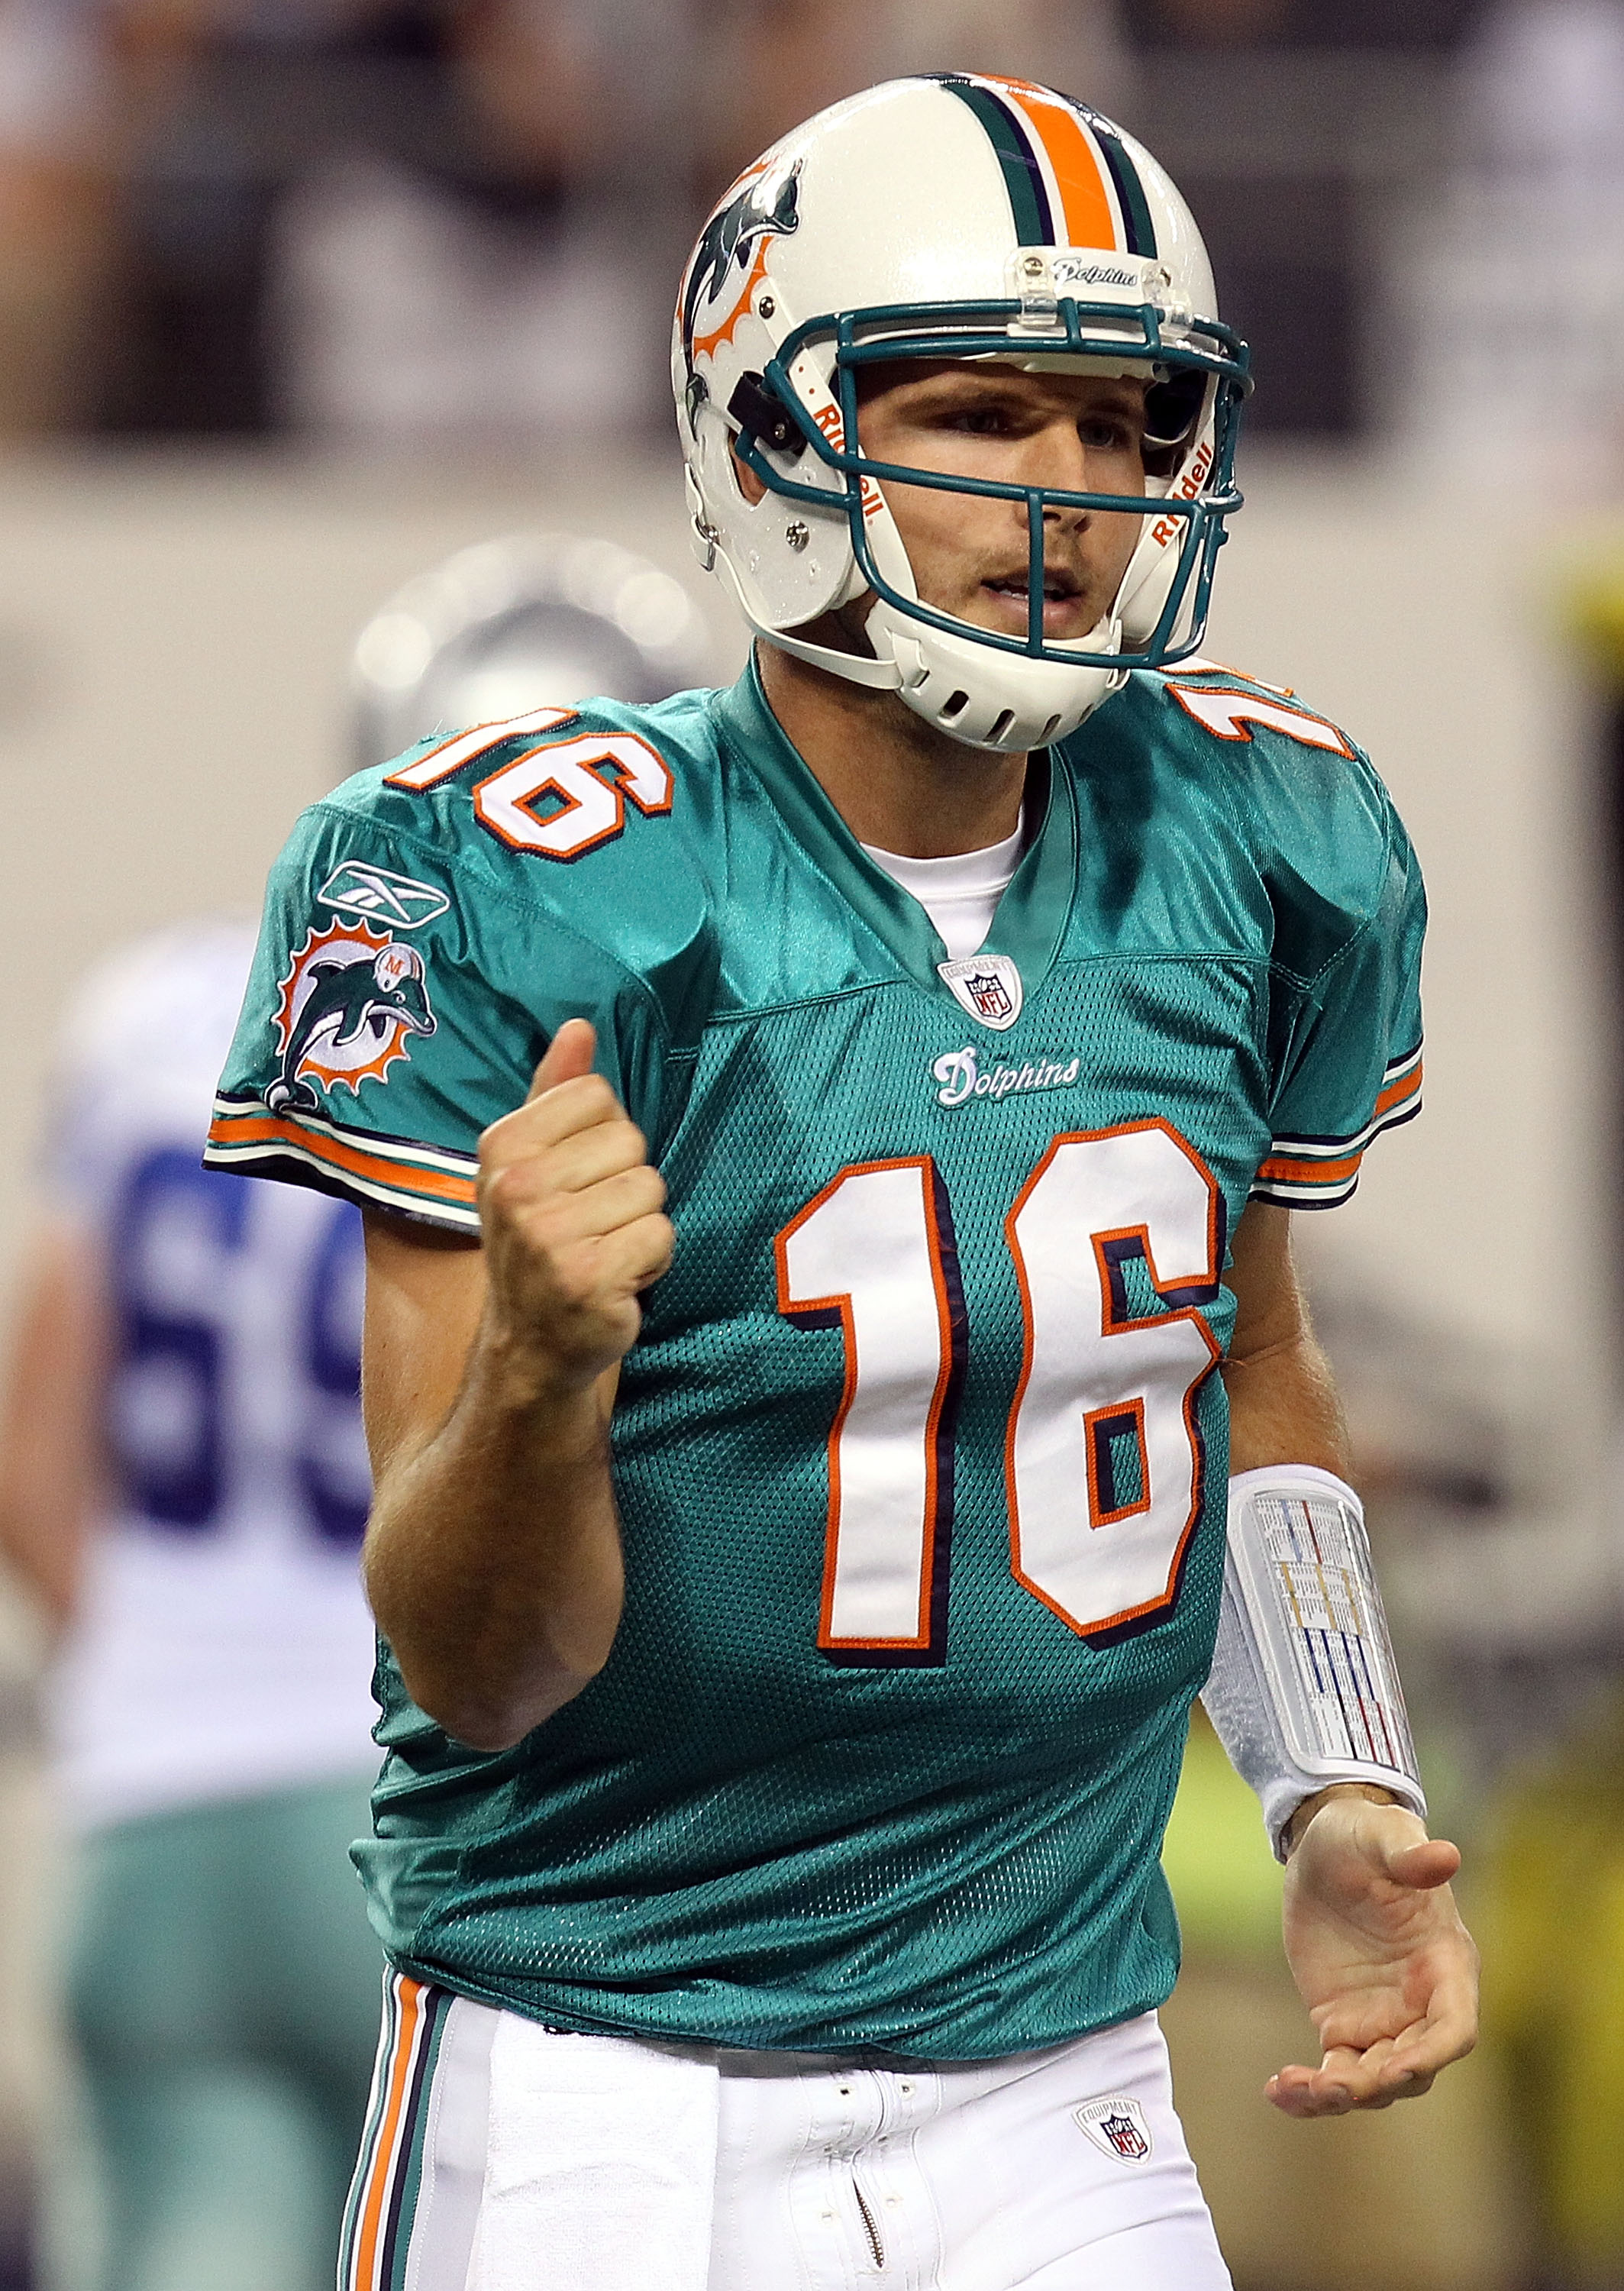 ARLINGTON, TX - SEPTEMBER 02:  Quarterback Tyler Thigpen #16 of the Miami Dolphins  during a preseason game at Cowboys Stadium on September 2, 2010 in Arlington, Texas.  (Photo by Ronald Martinez/Getty Images)